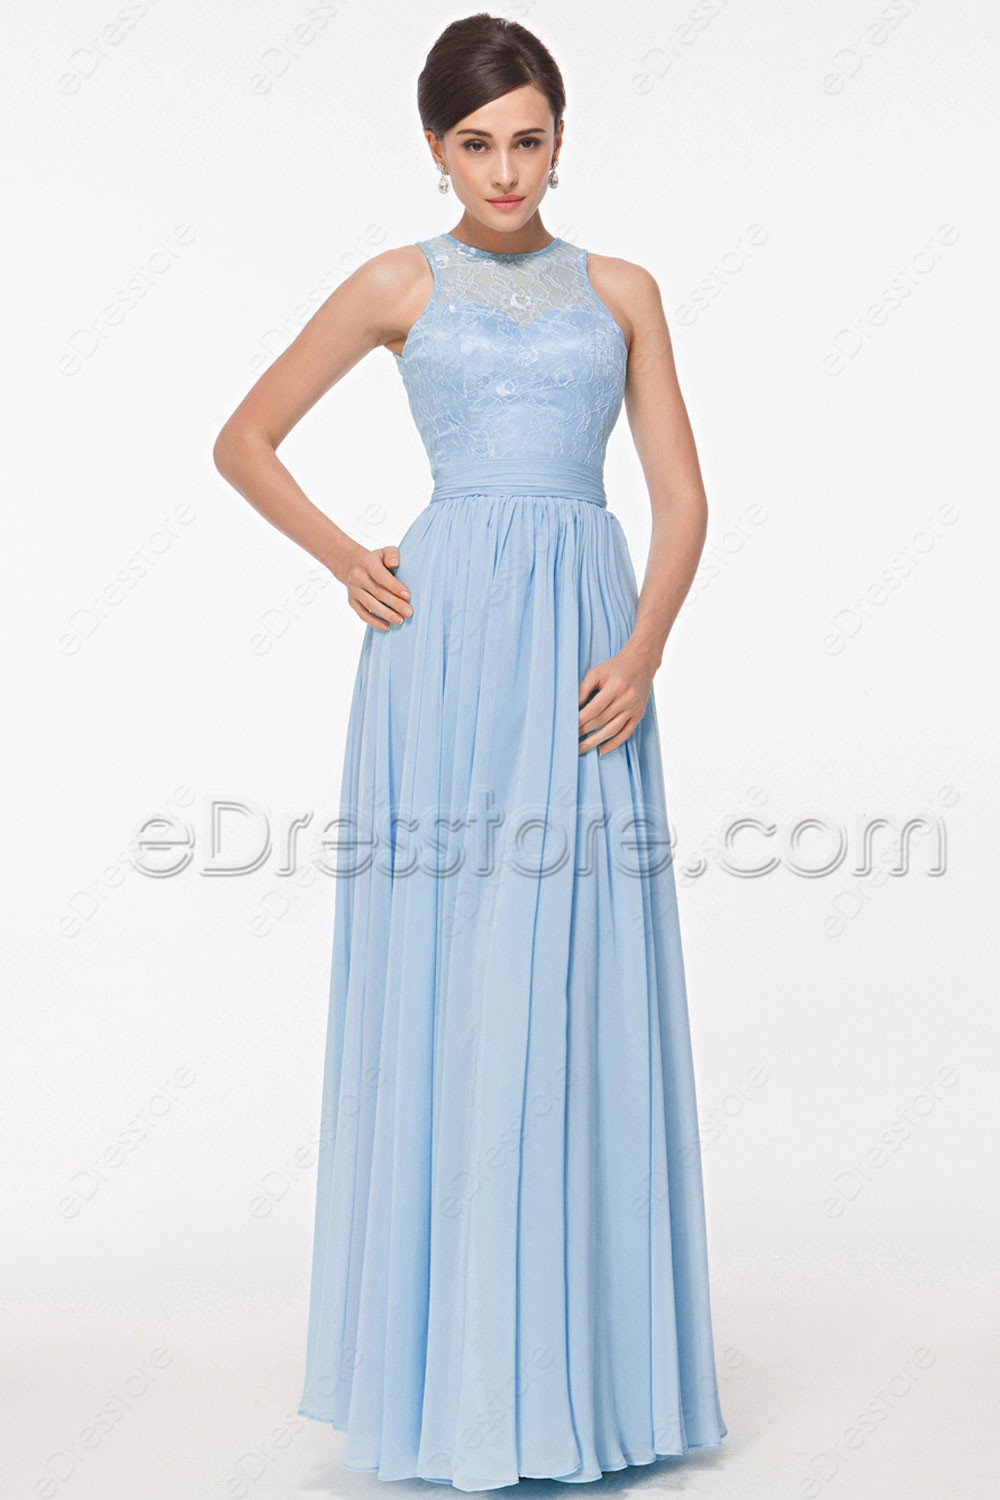 Lace Light Blue Bridesmaid Dresses Key Hole Back